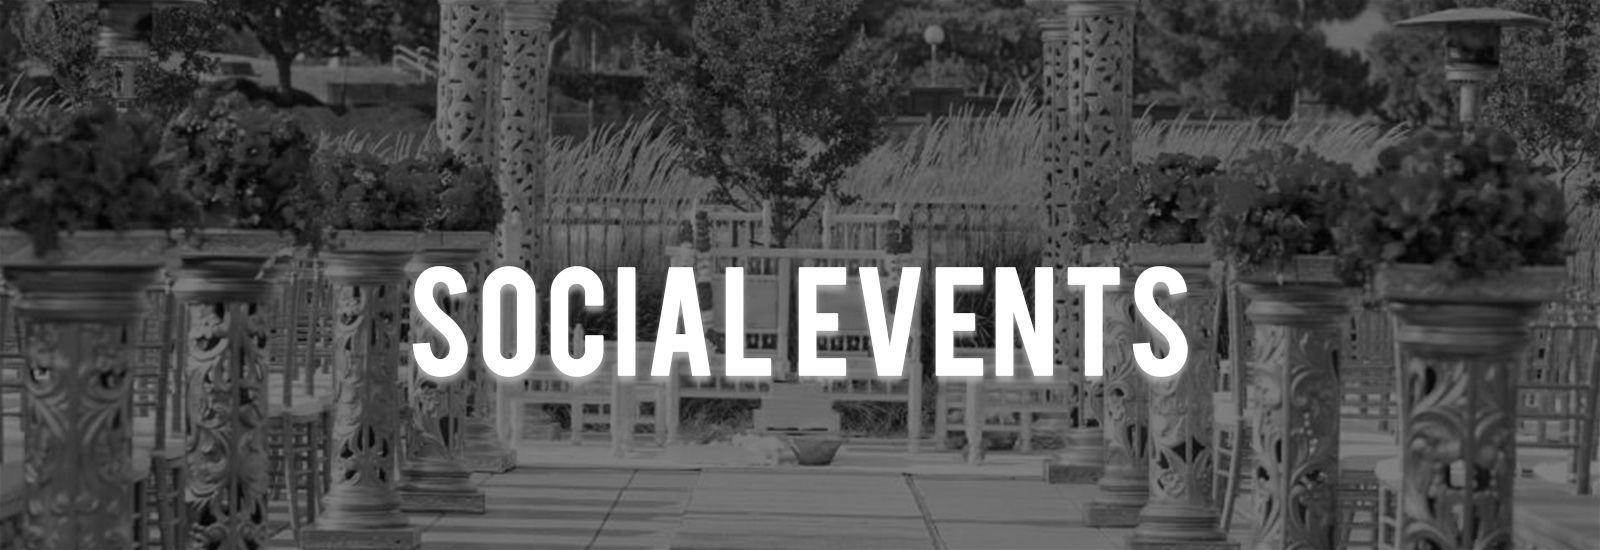 socialevents